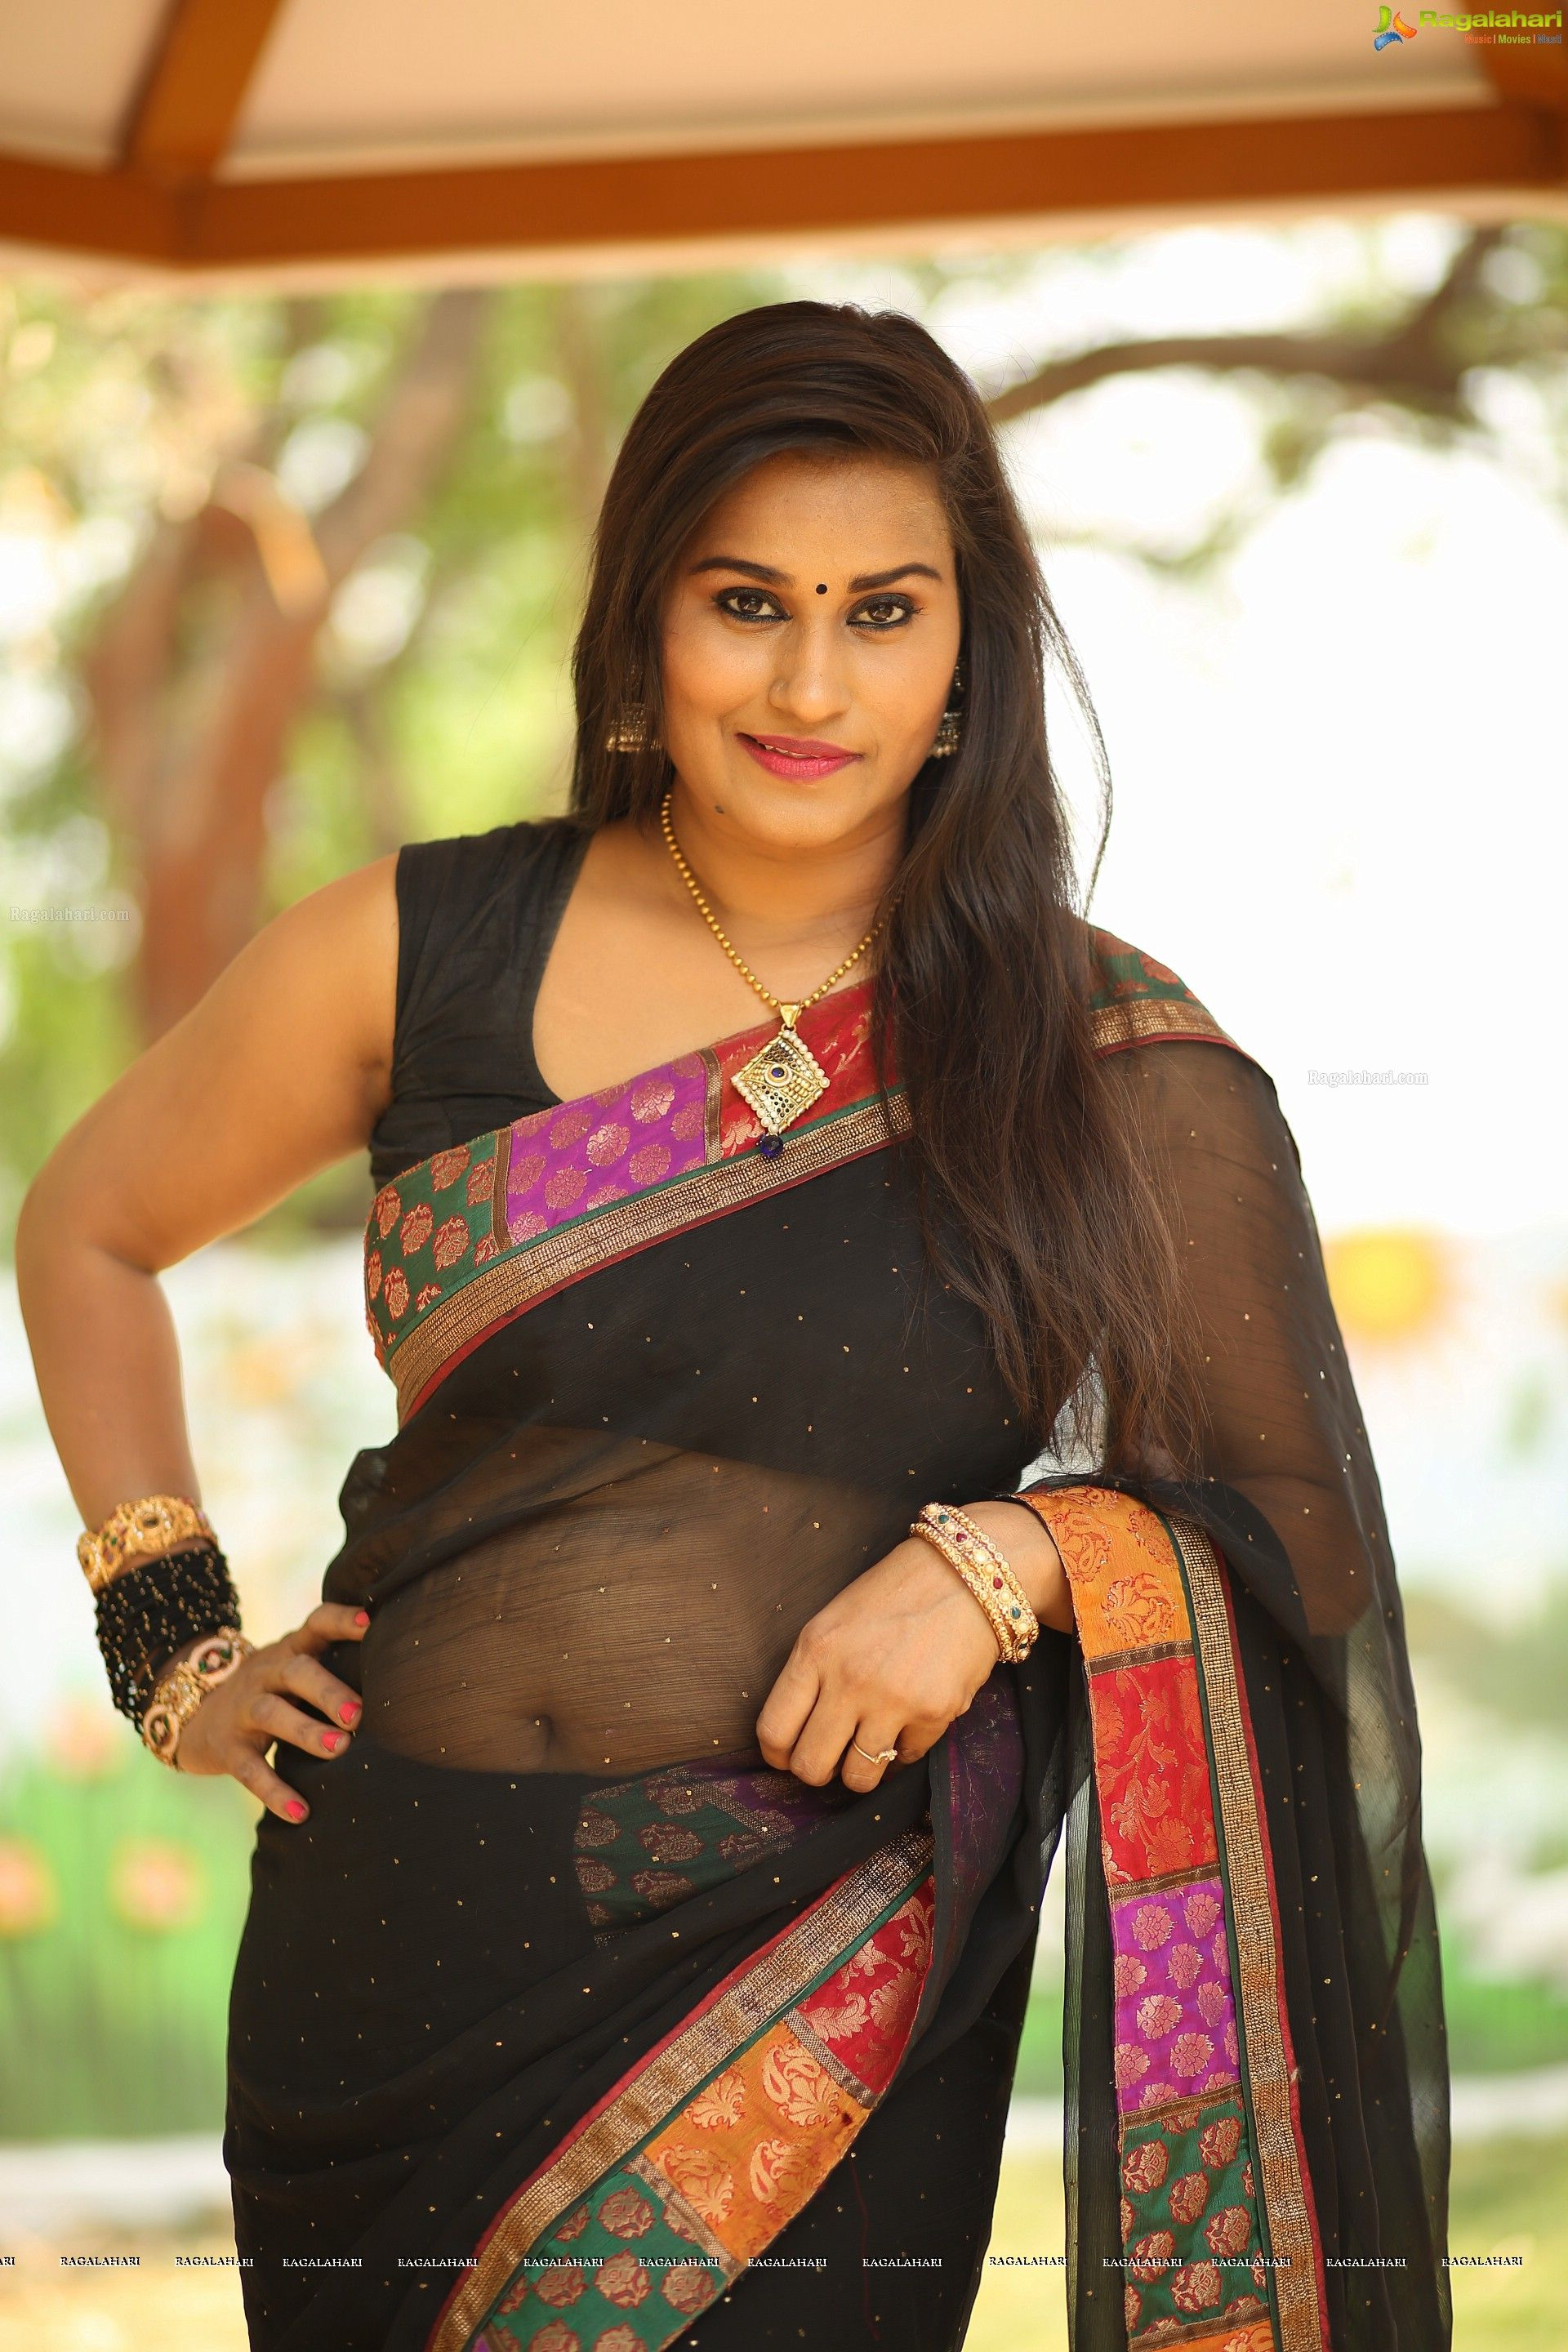 Aunty hot in saree images